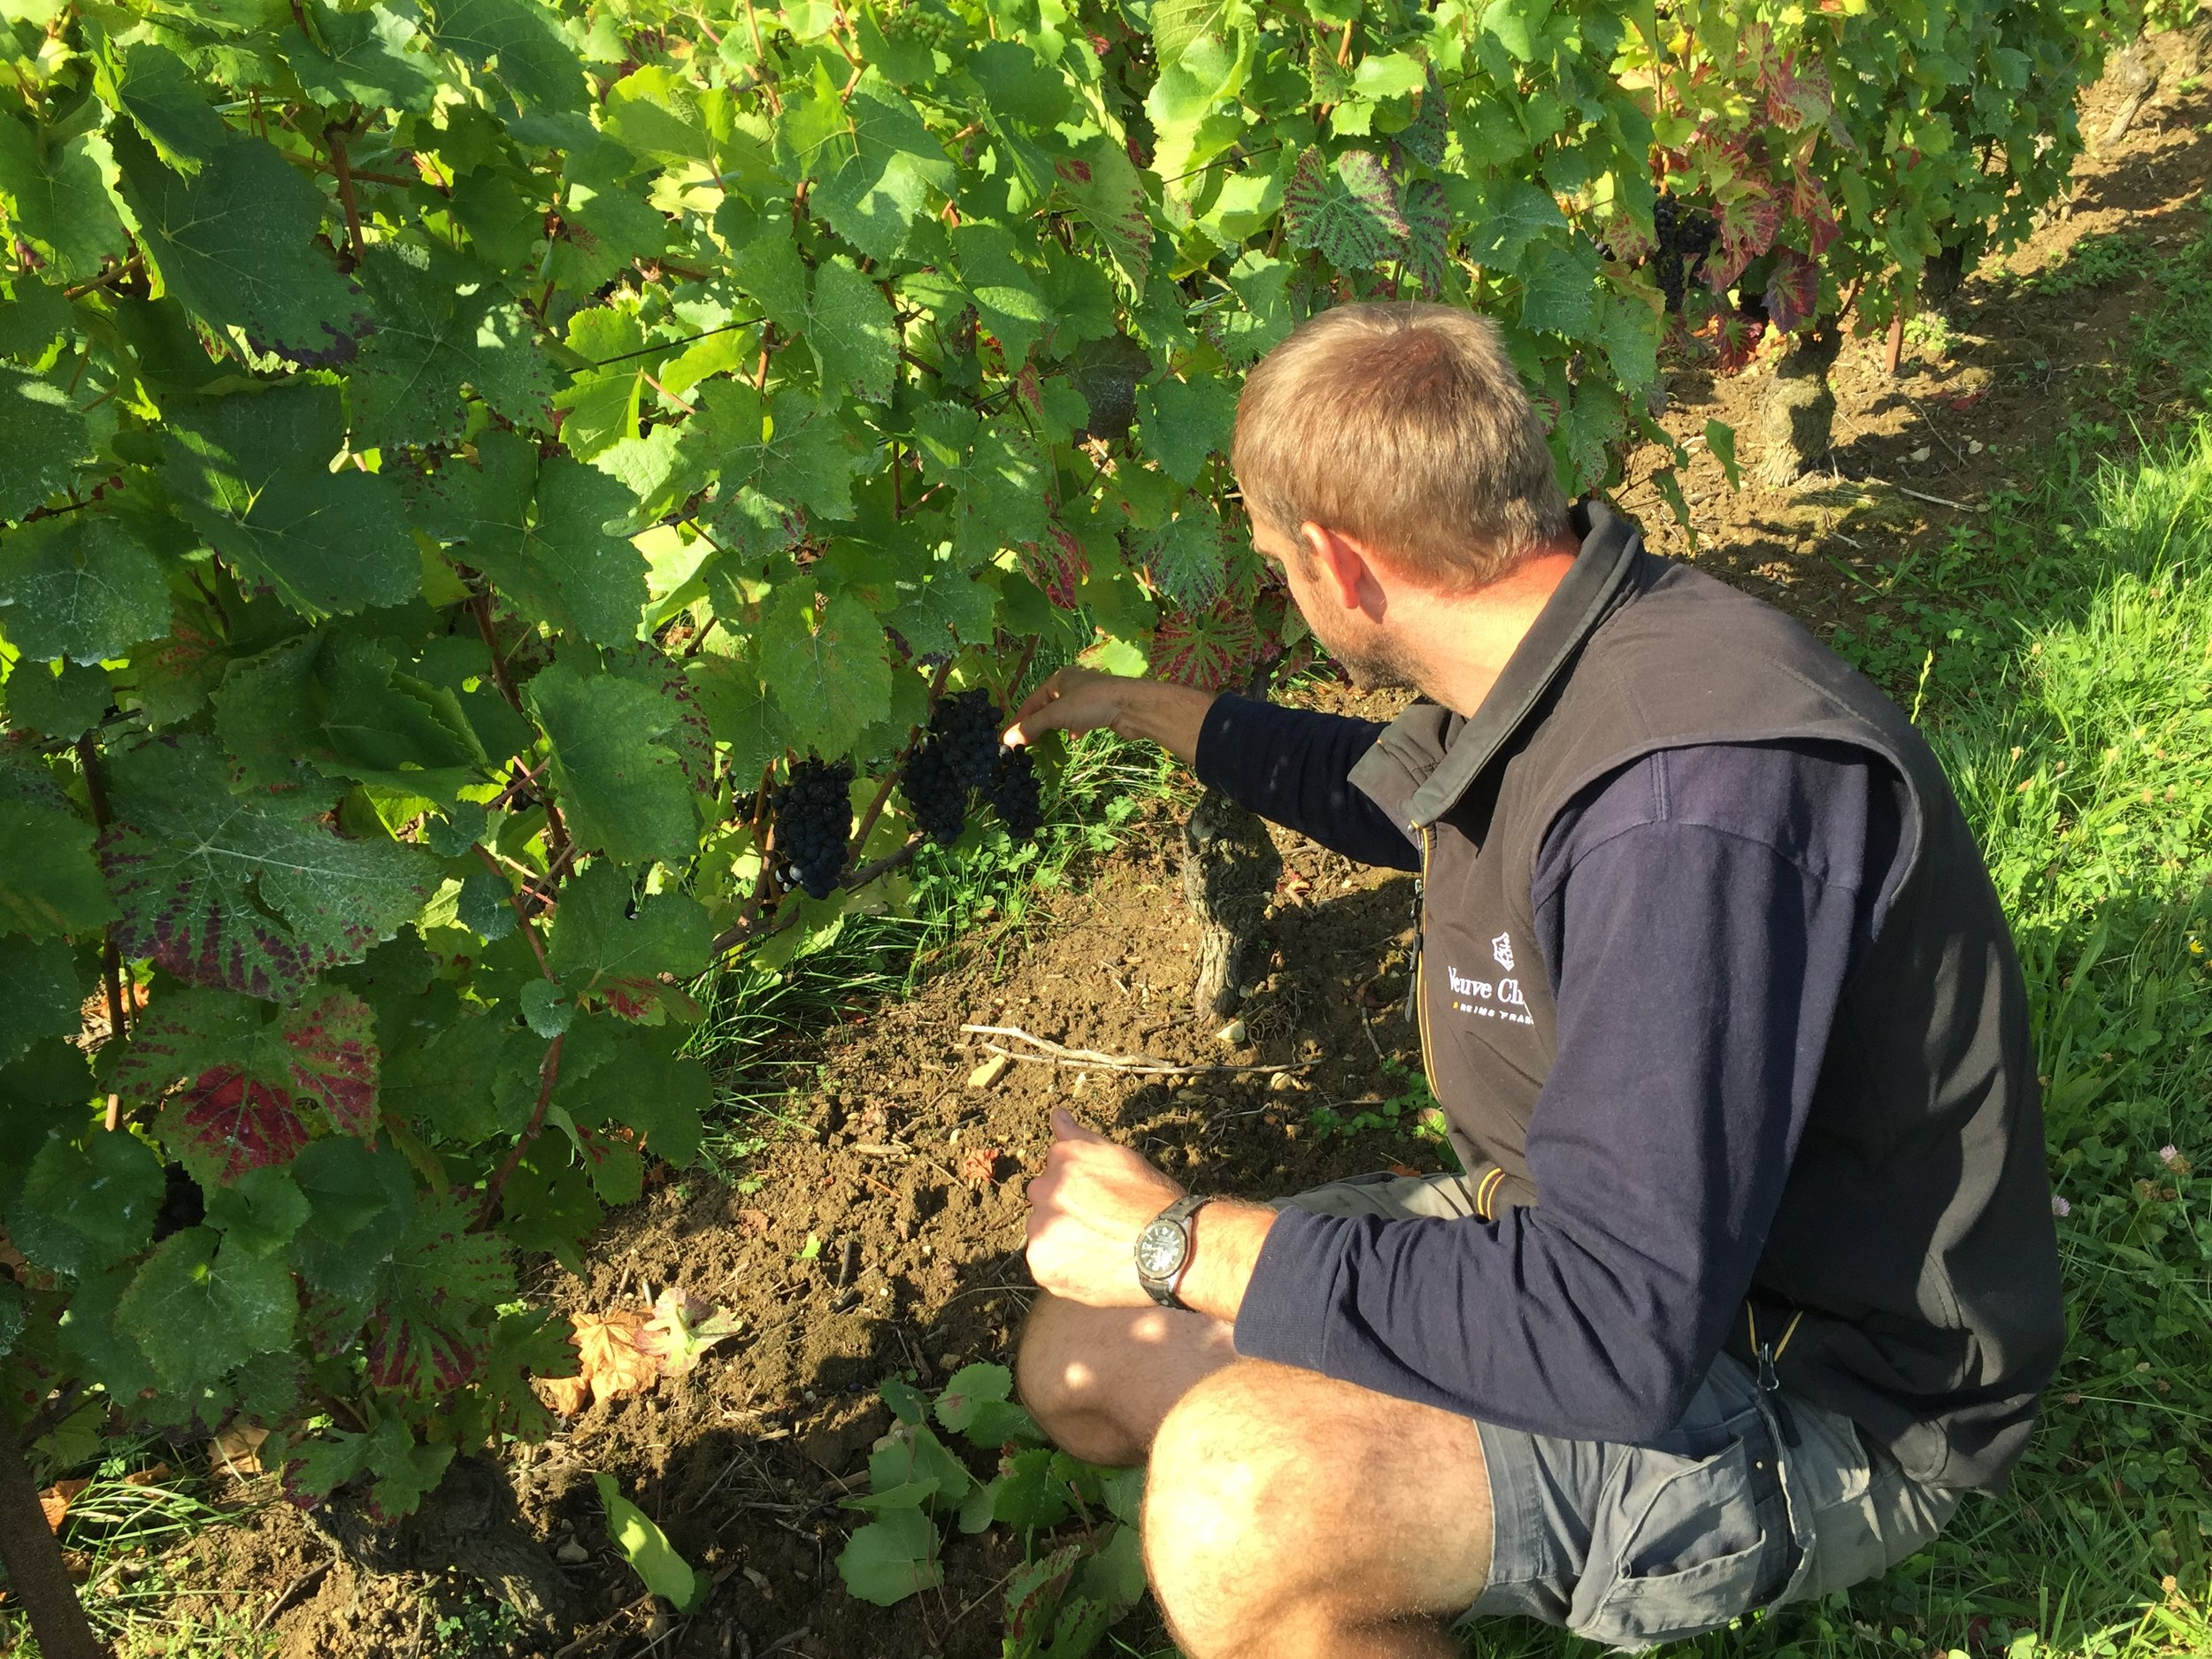 Wilfried checking on his grapes to assess when he can start harvest